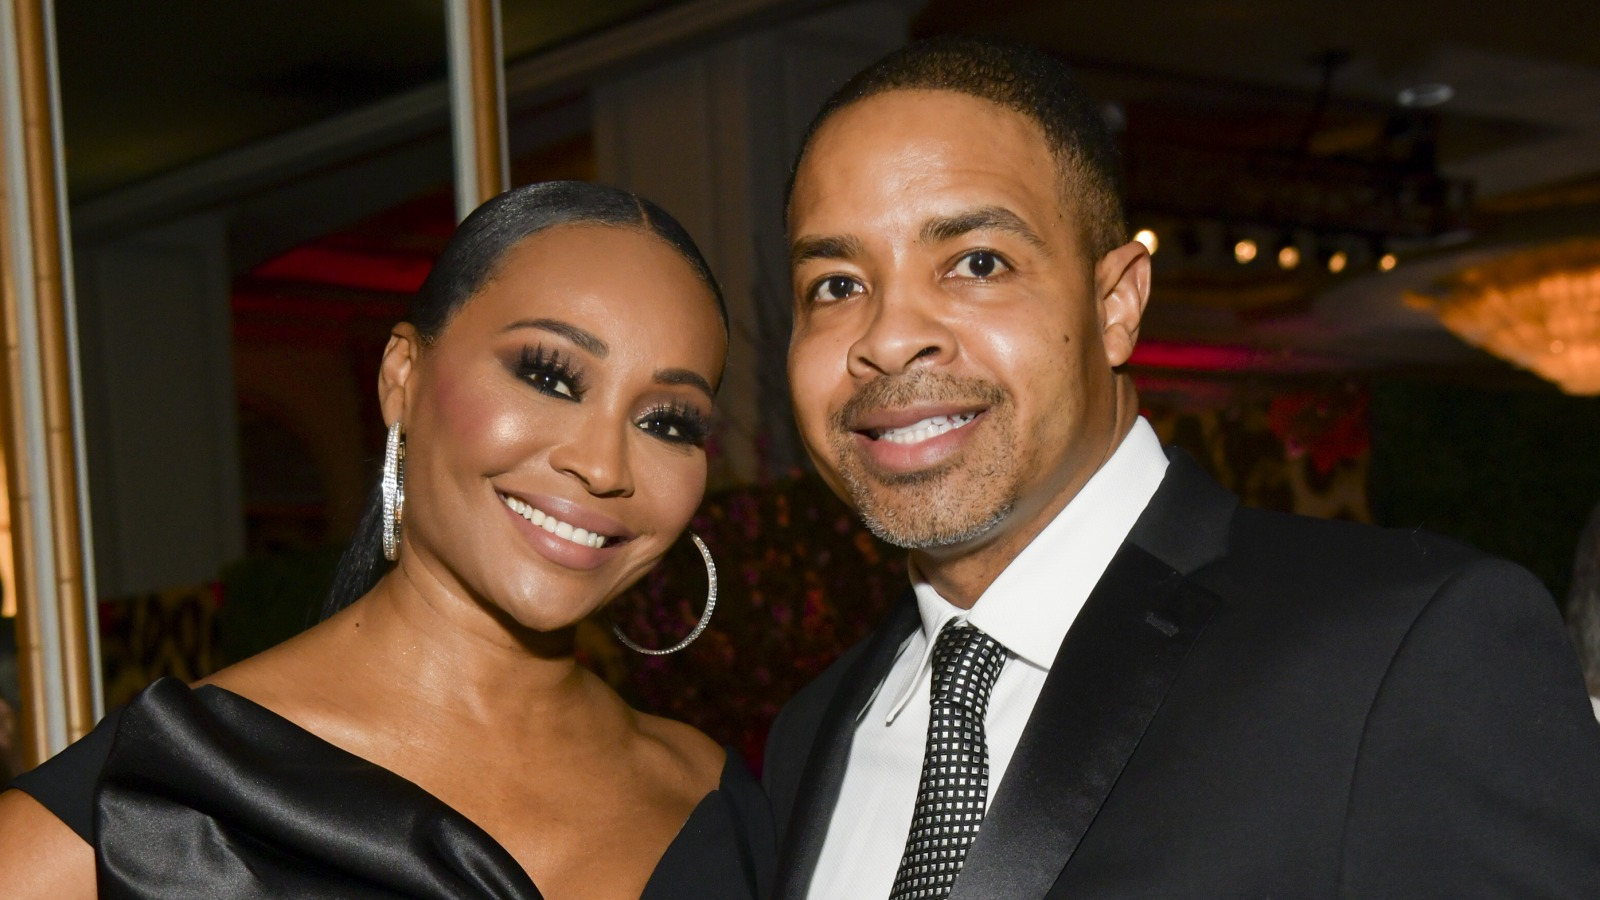 This is why you won't see Cynthia Bailey's wedding on Real Housewives anytime